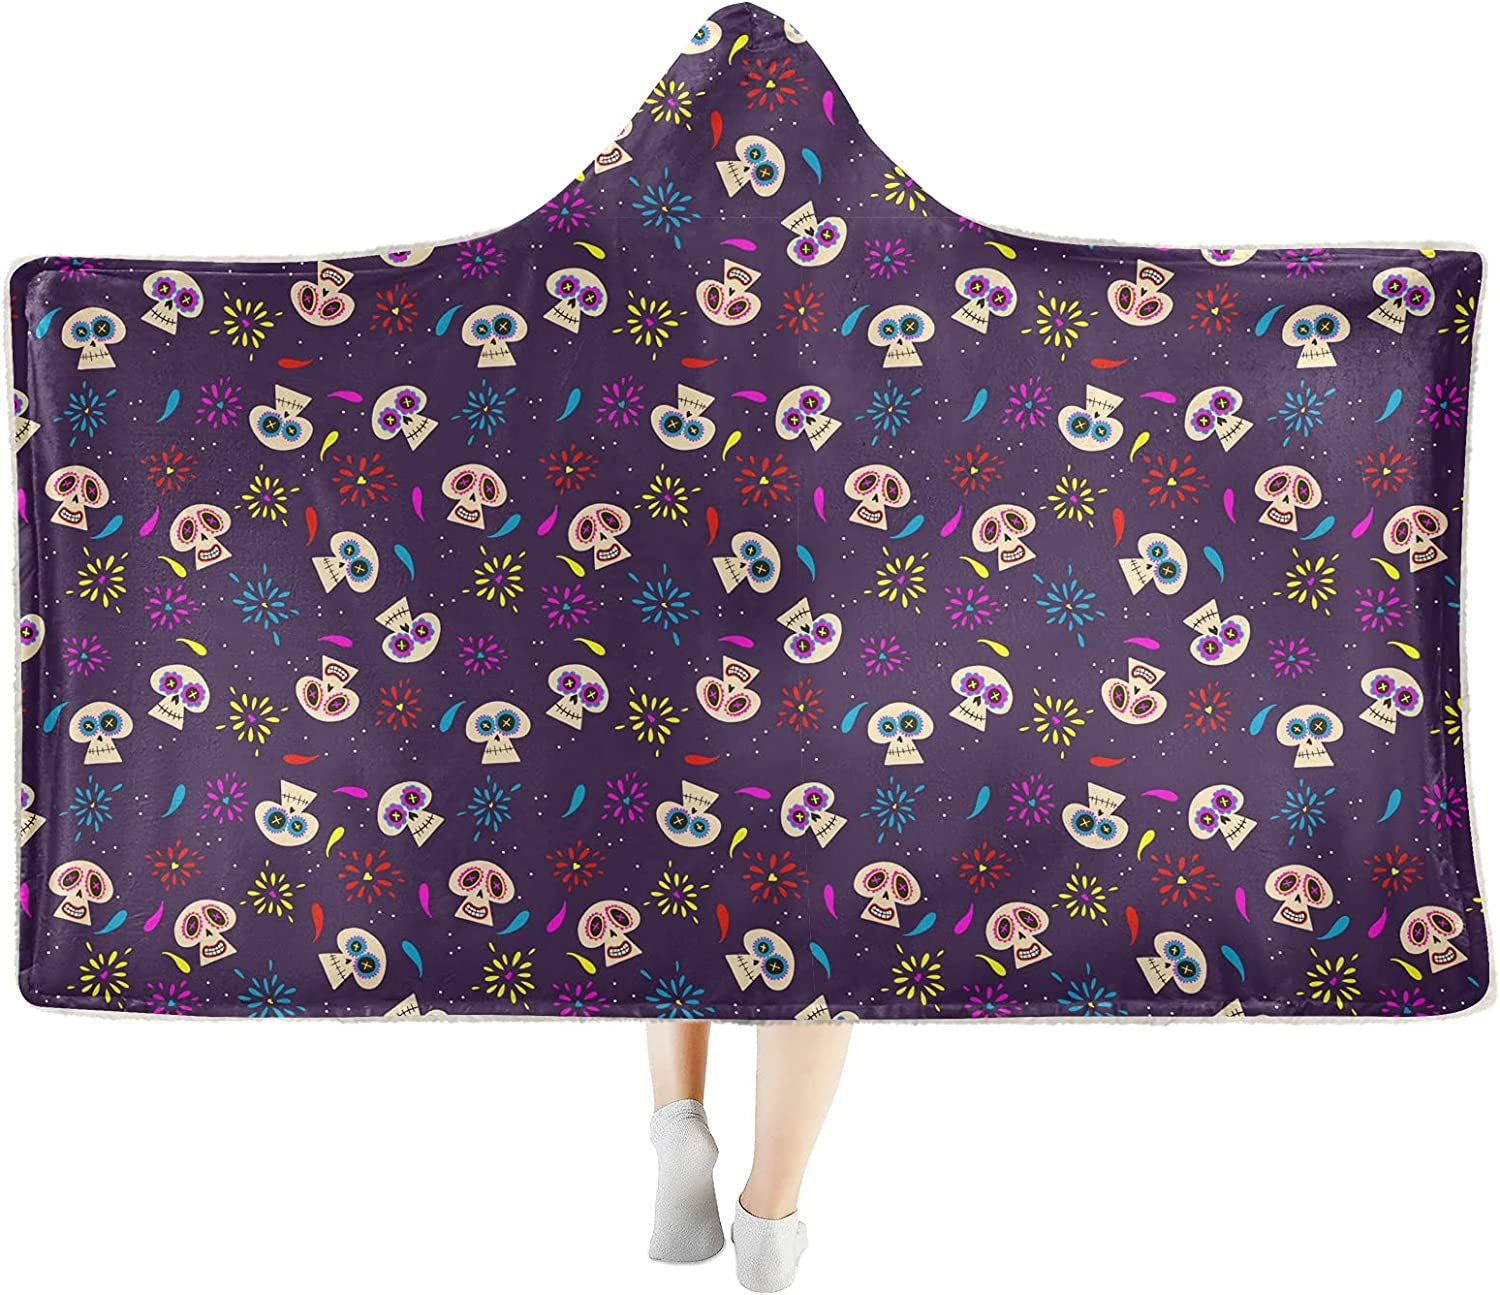 Colorful OFFicial shop Flower Skull Halloween Wearable Blanket Hooded Soft Coz Ranking TOP3